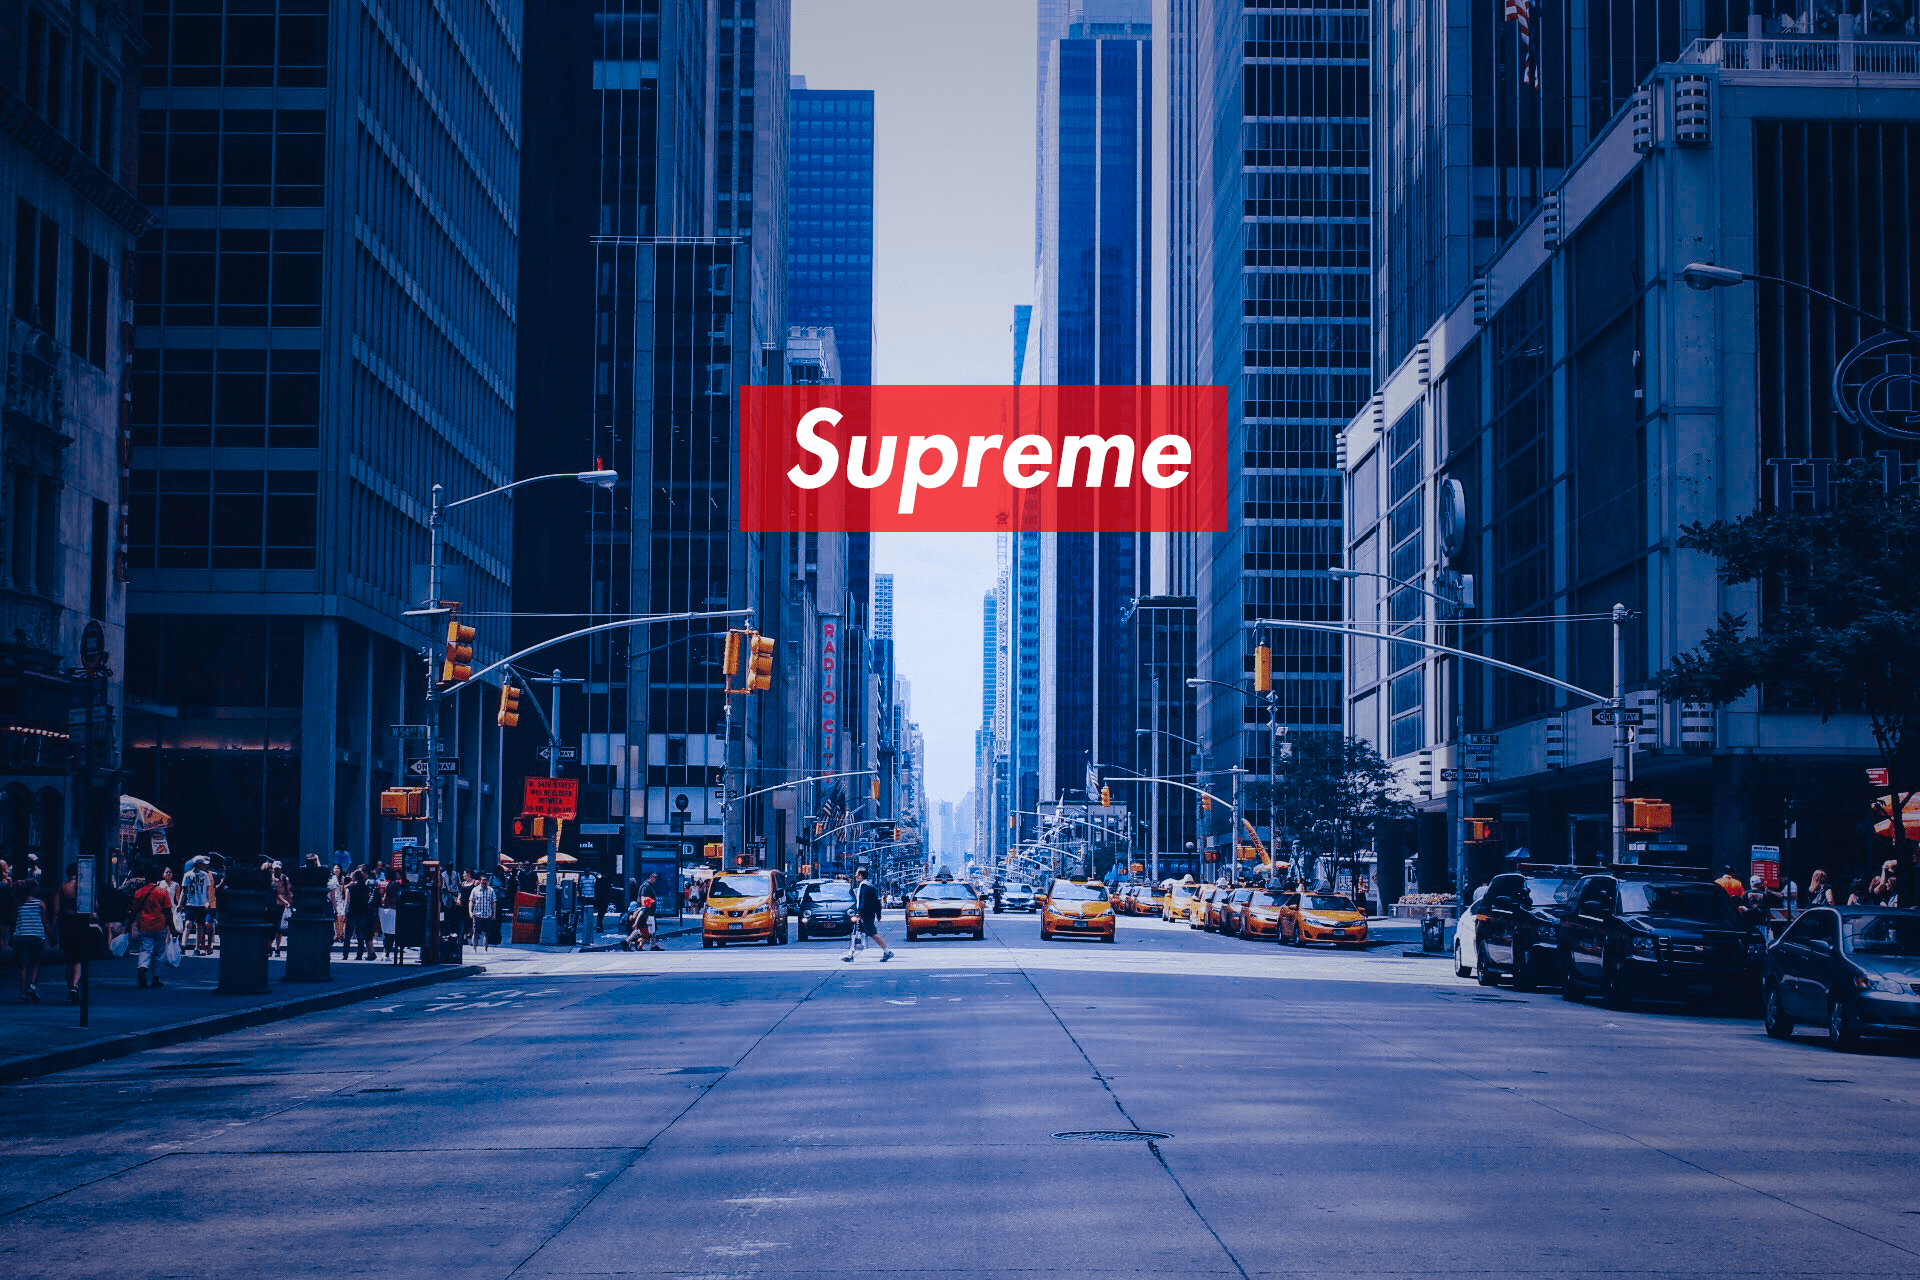 70 Supreme Wallpapers In 4k Allhdwallpapers Supreme Supreme